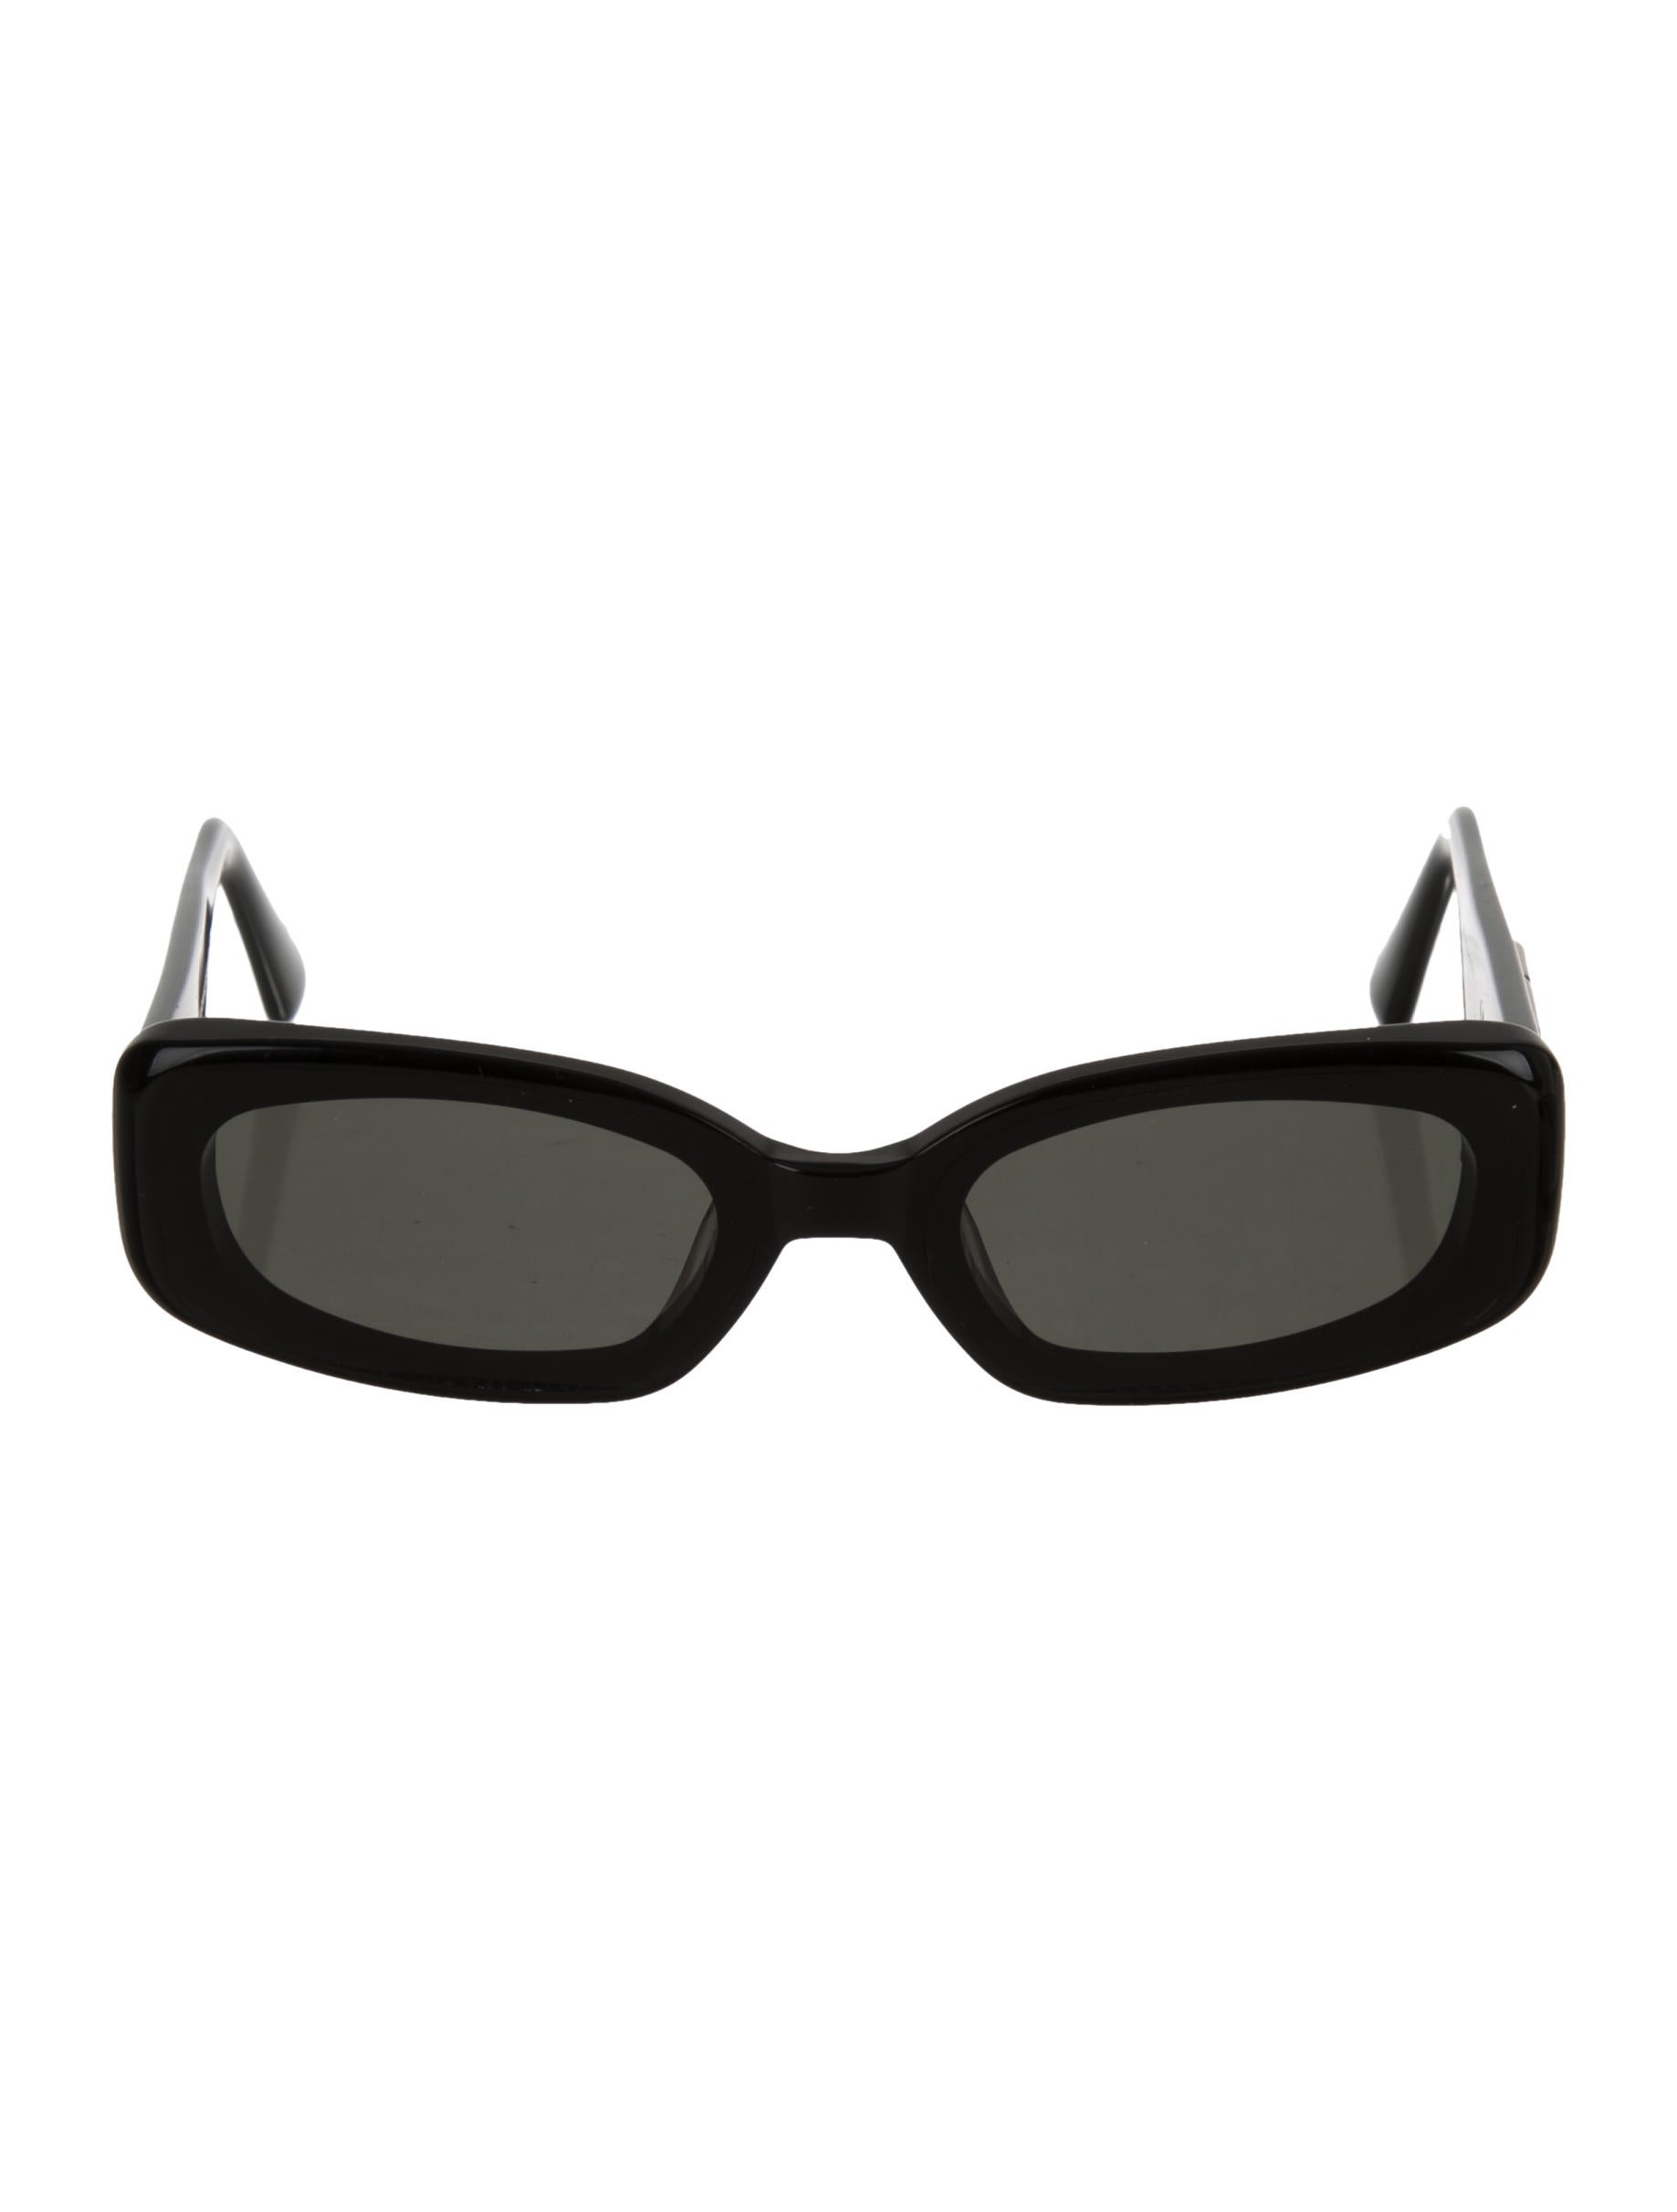 fa144d53b304 Gentle Monster 2018 CEO Sunglasses w  Tags - Accessories ...